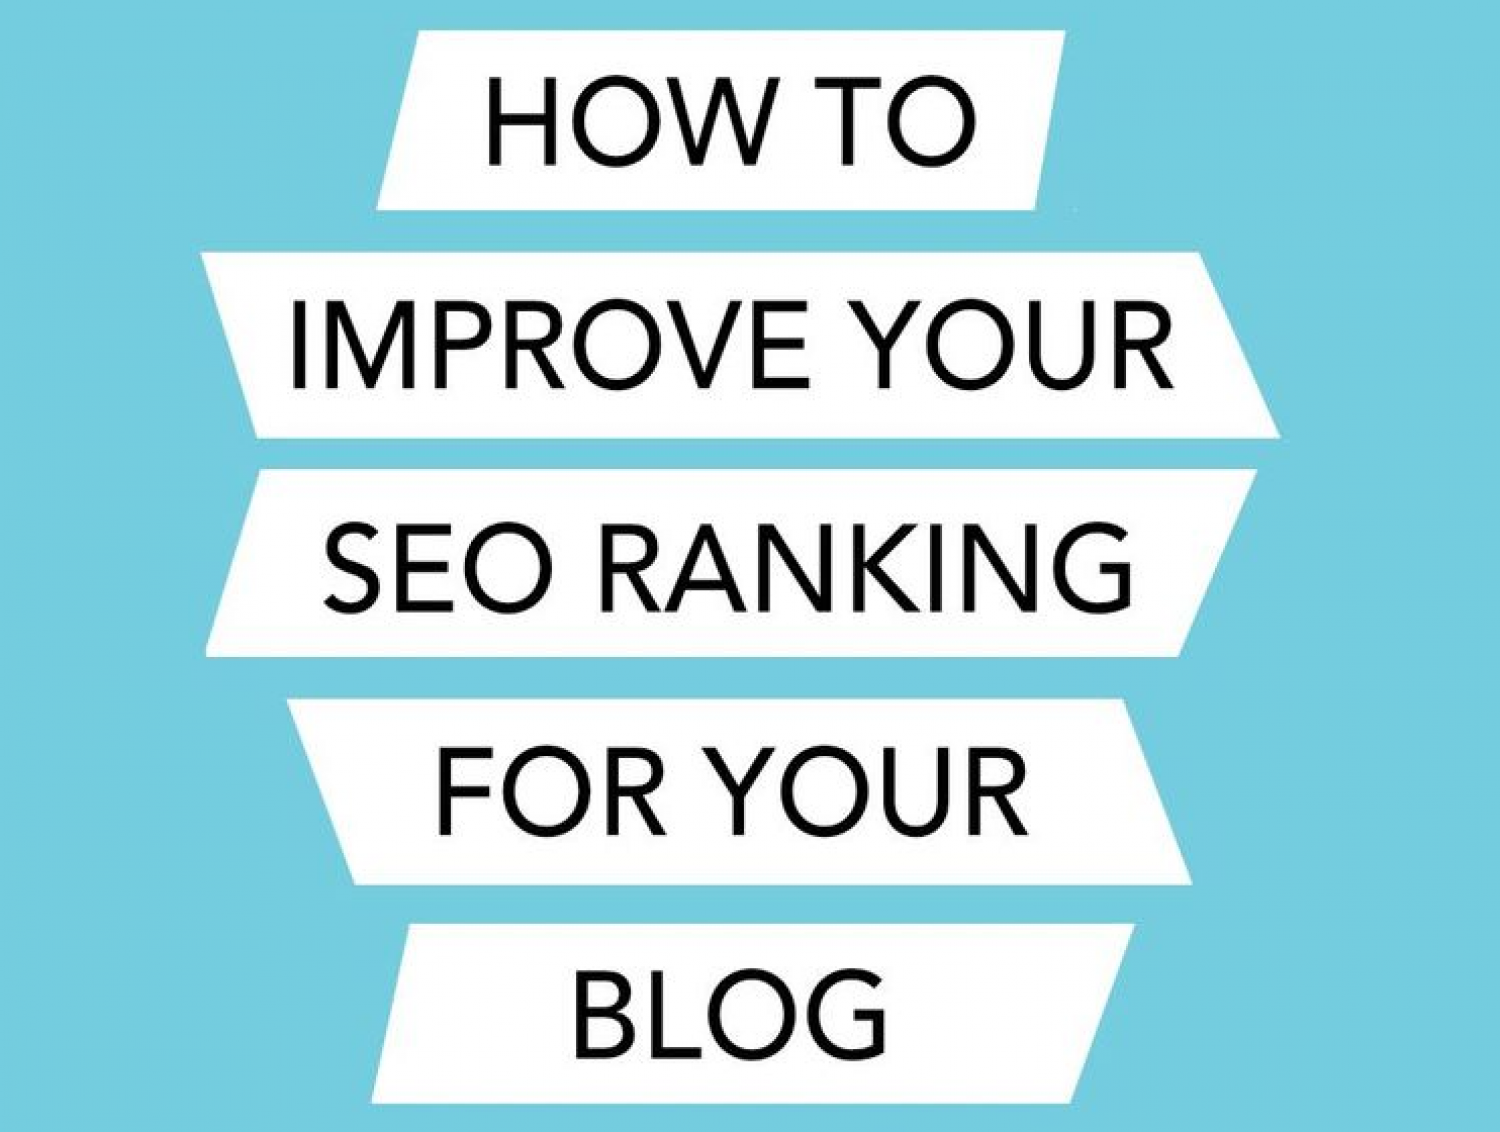 How To Improve Your SEO Ranking For Your Blog Infographic